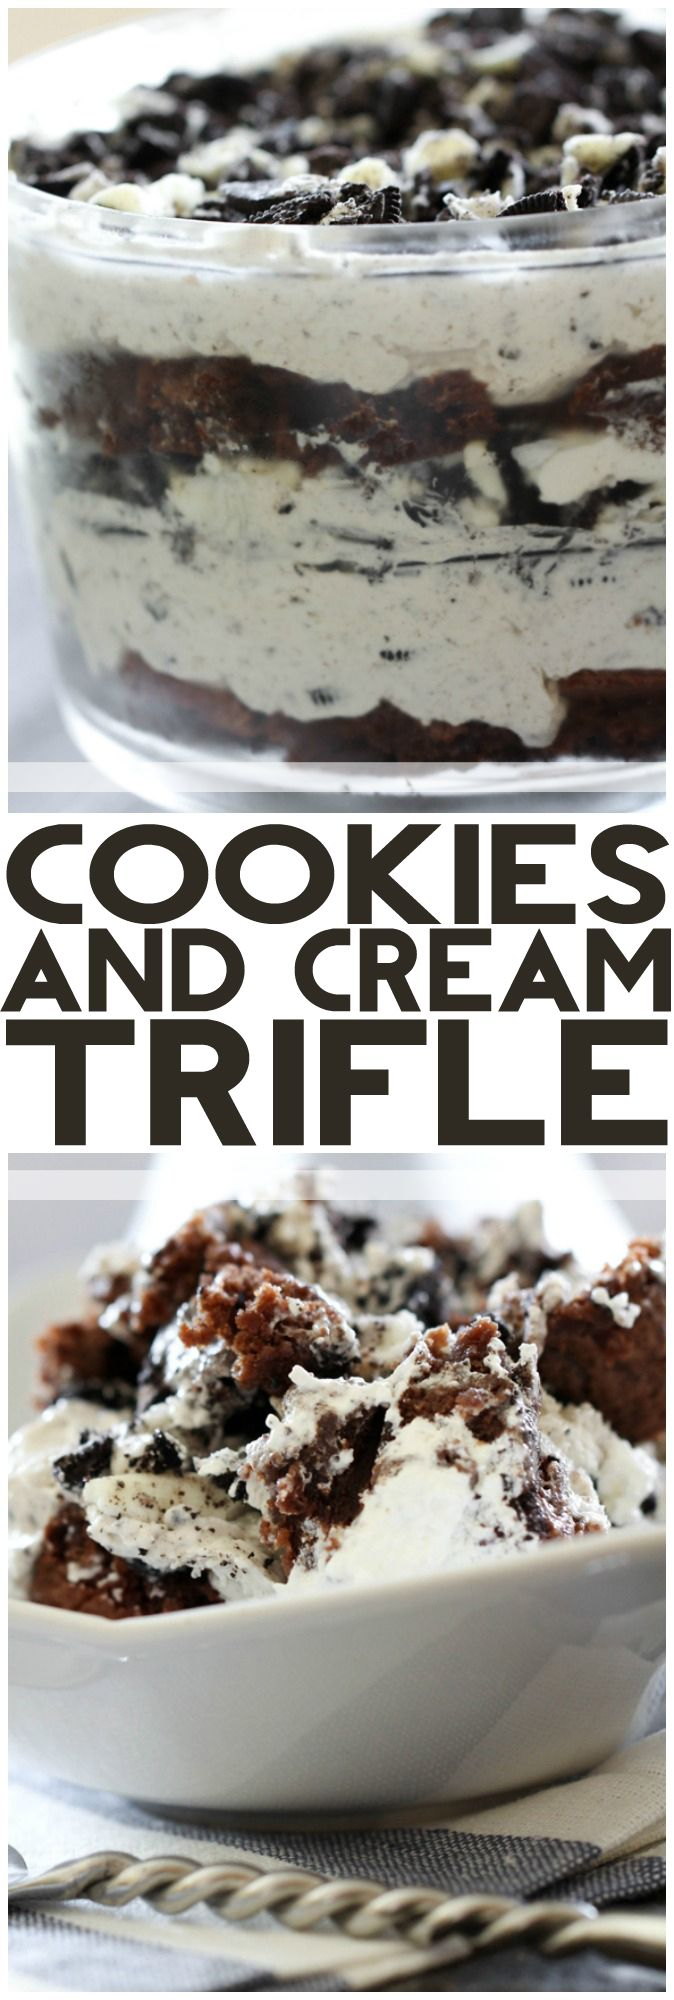 Cookies and Cream Trifle - Chef in Training